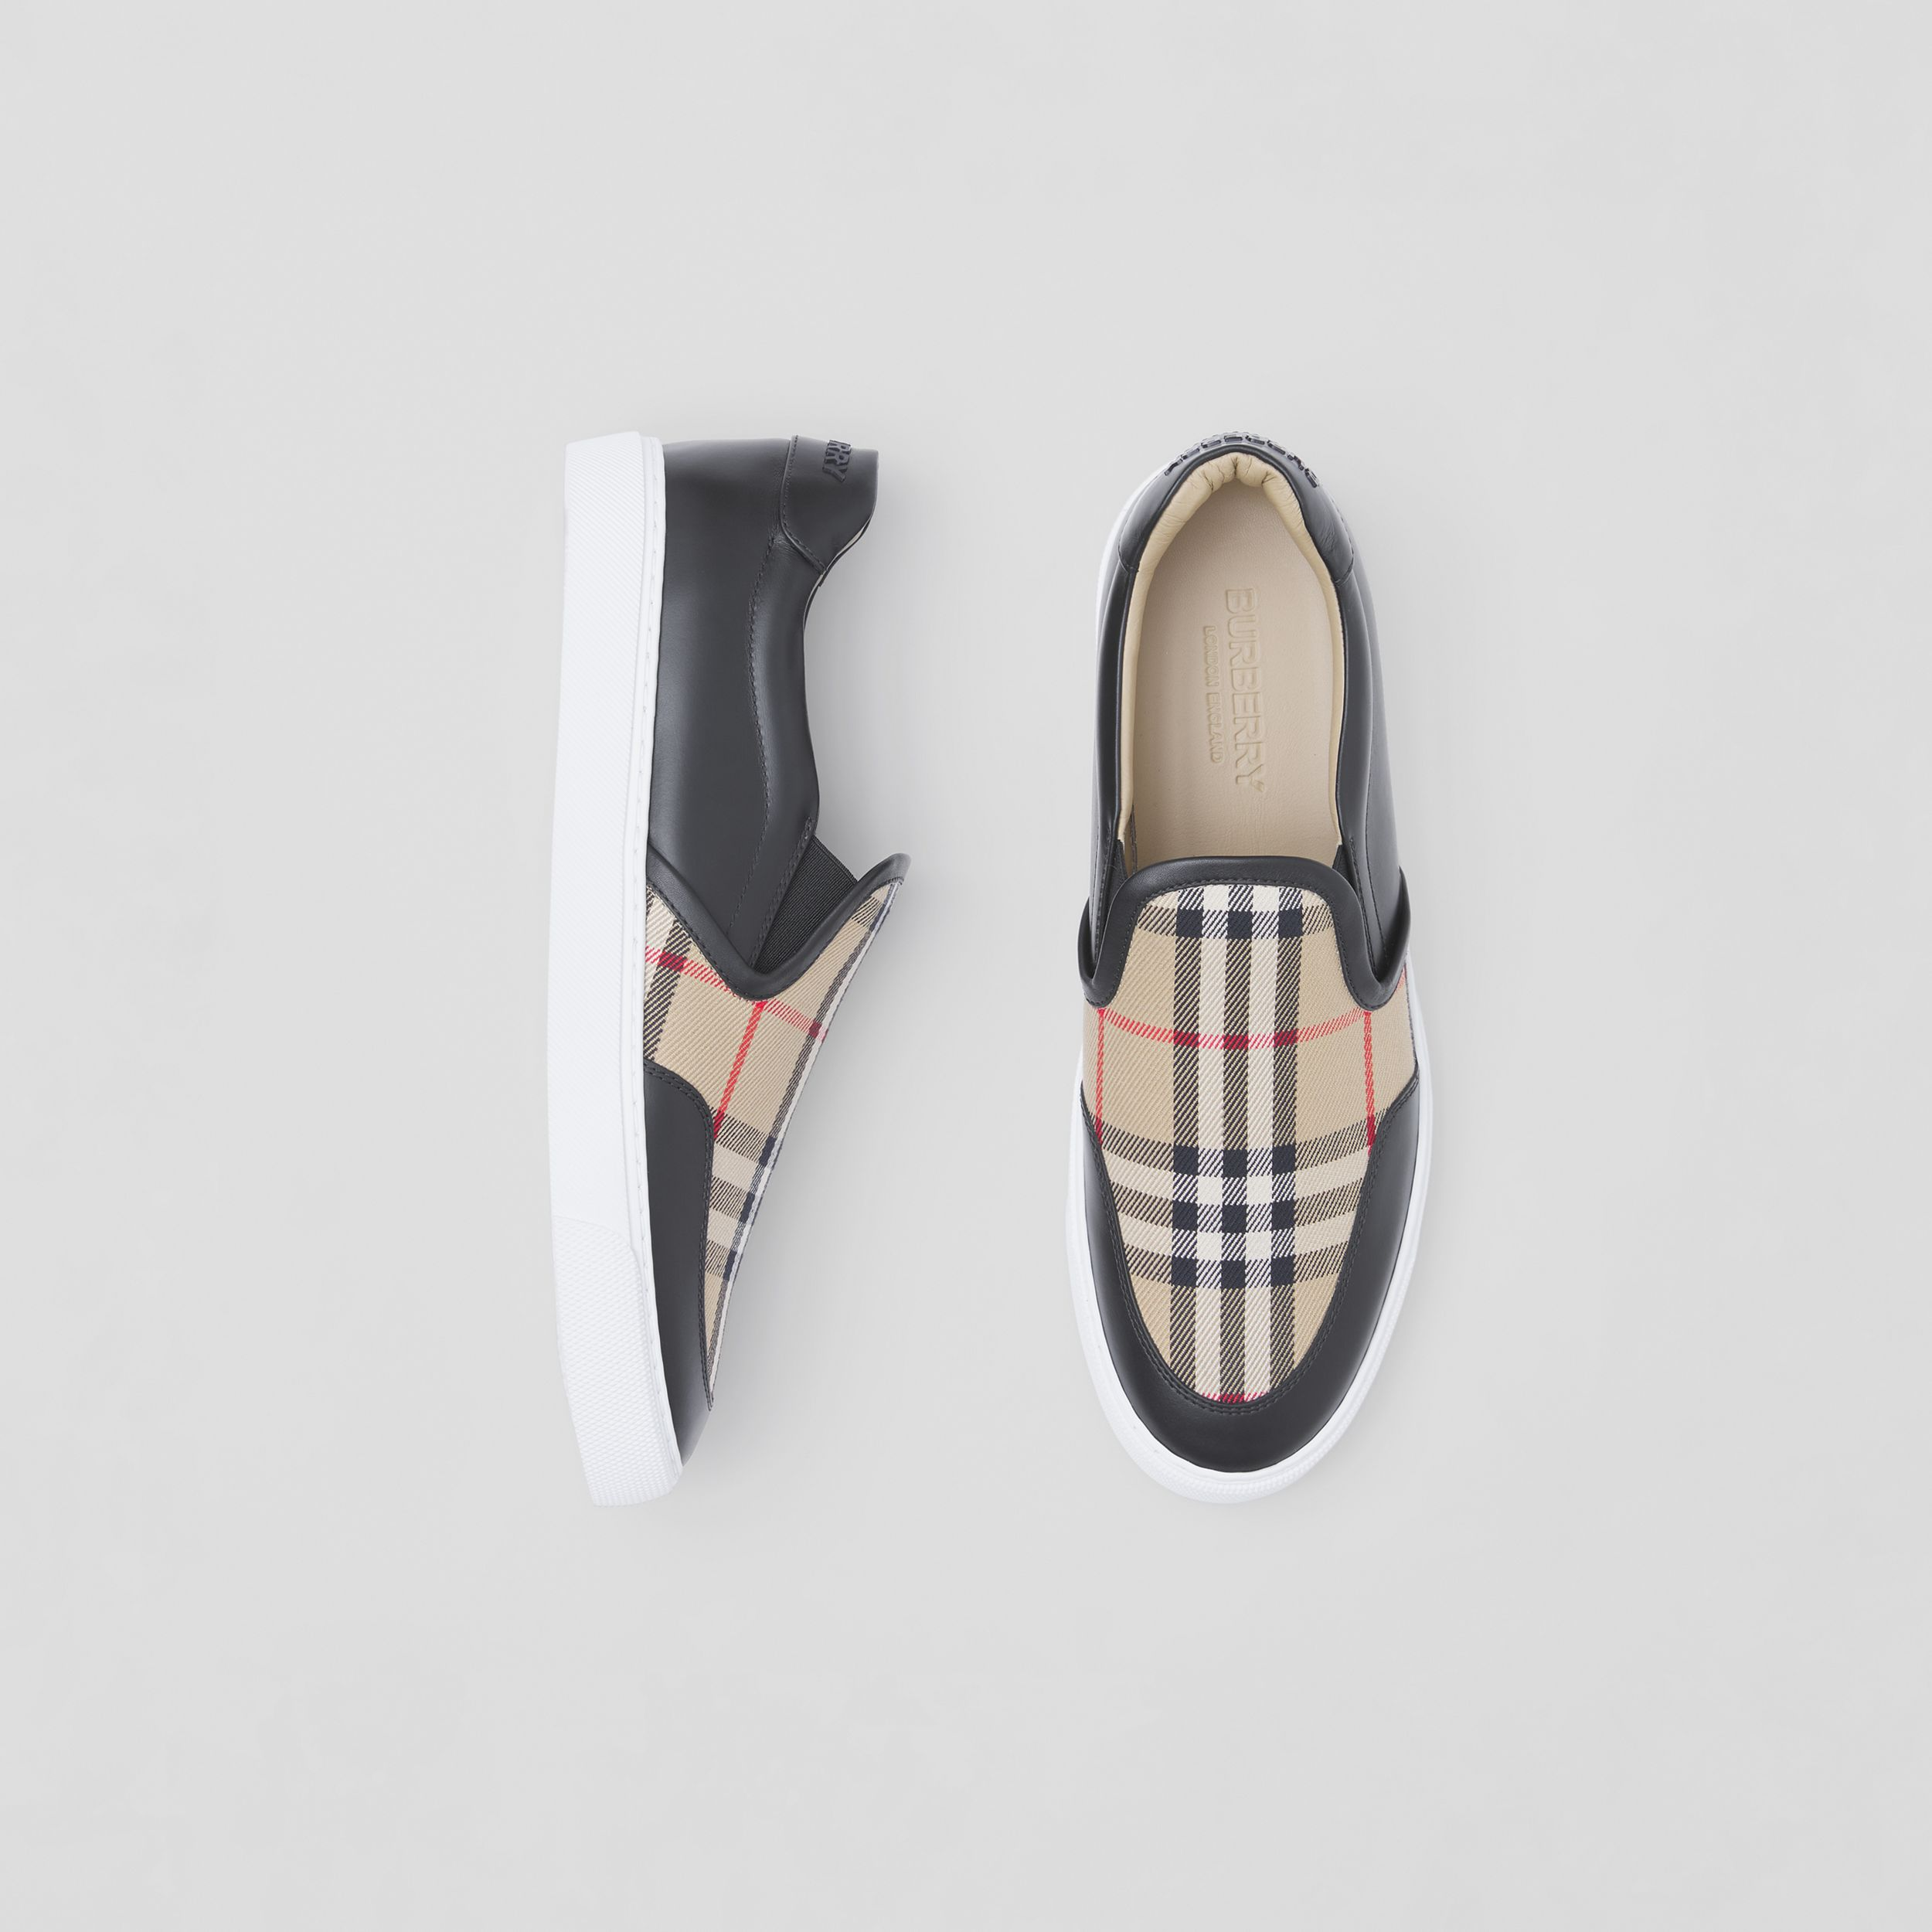 Leather and Vintage Check Slip-on Sneakers in Black - Women | Burberry - 1